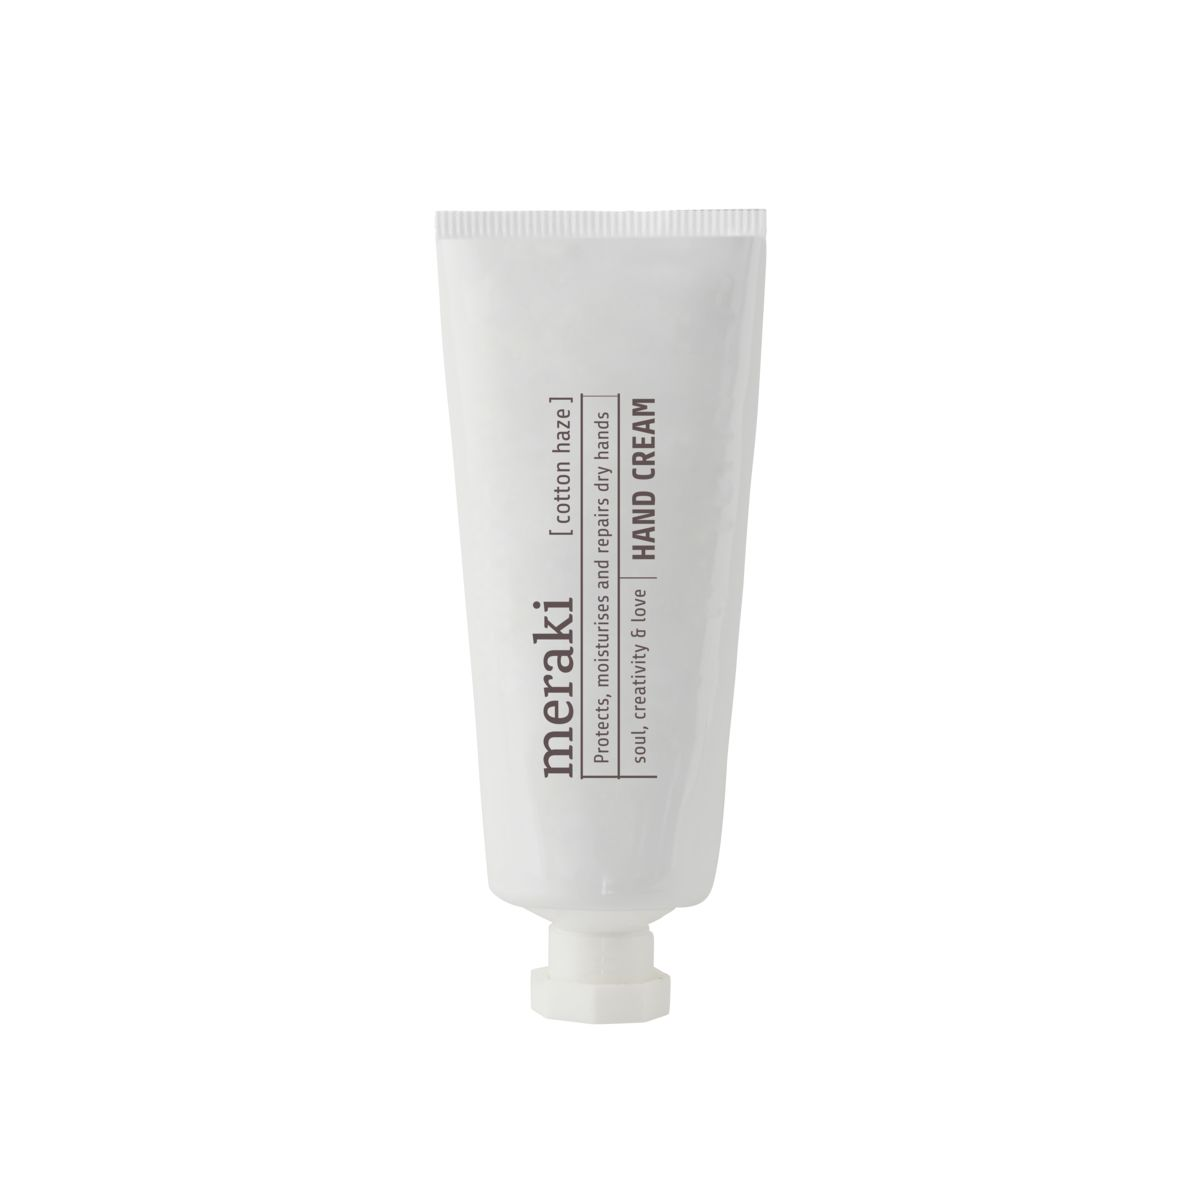 Image of   Meraki håndcreme, Cotten haze, 50 ml.